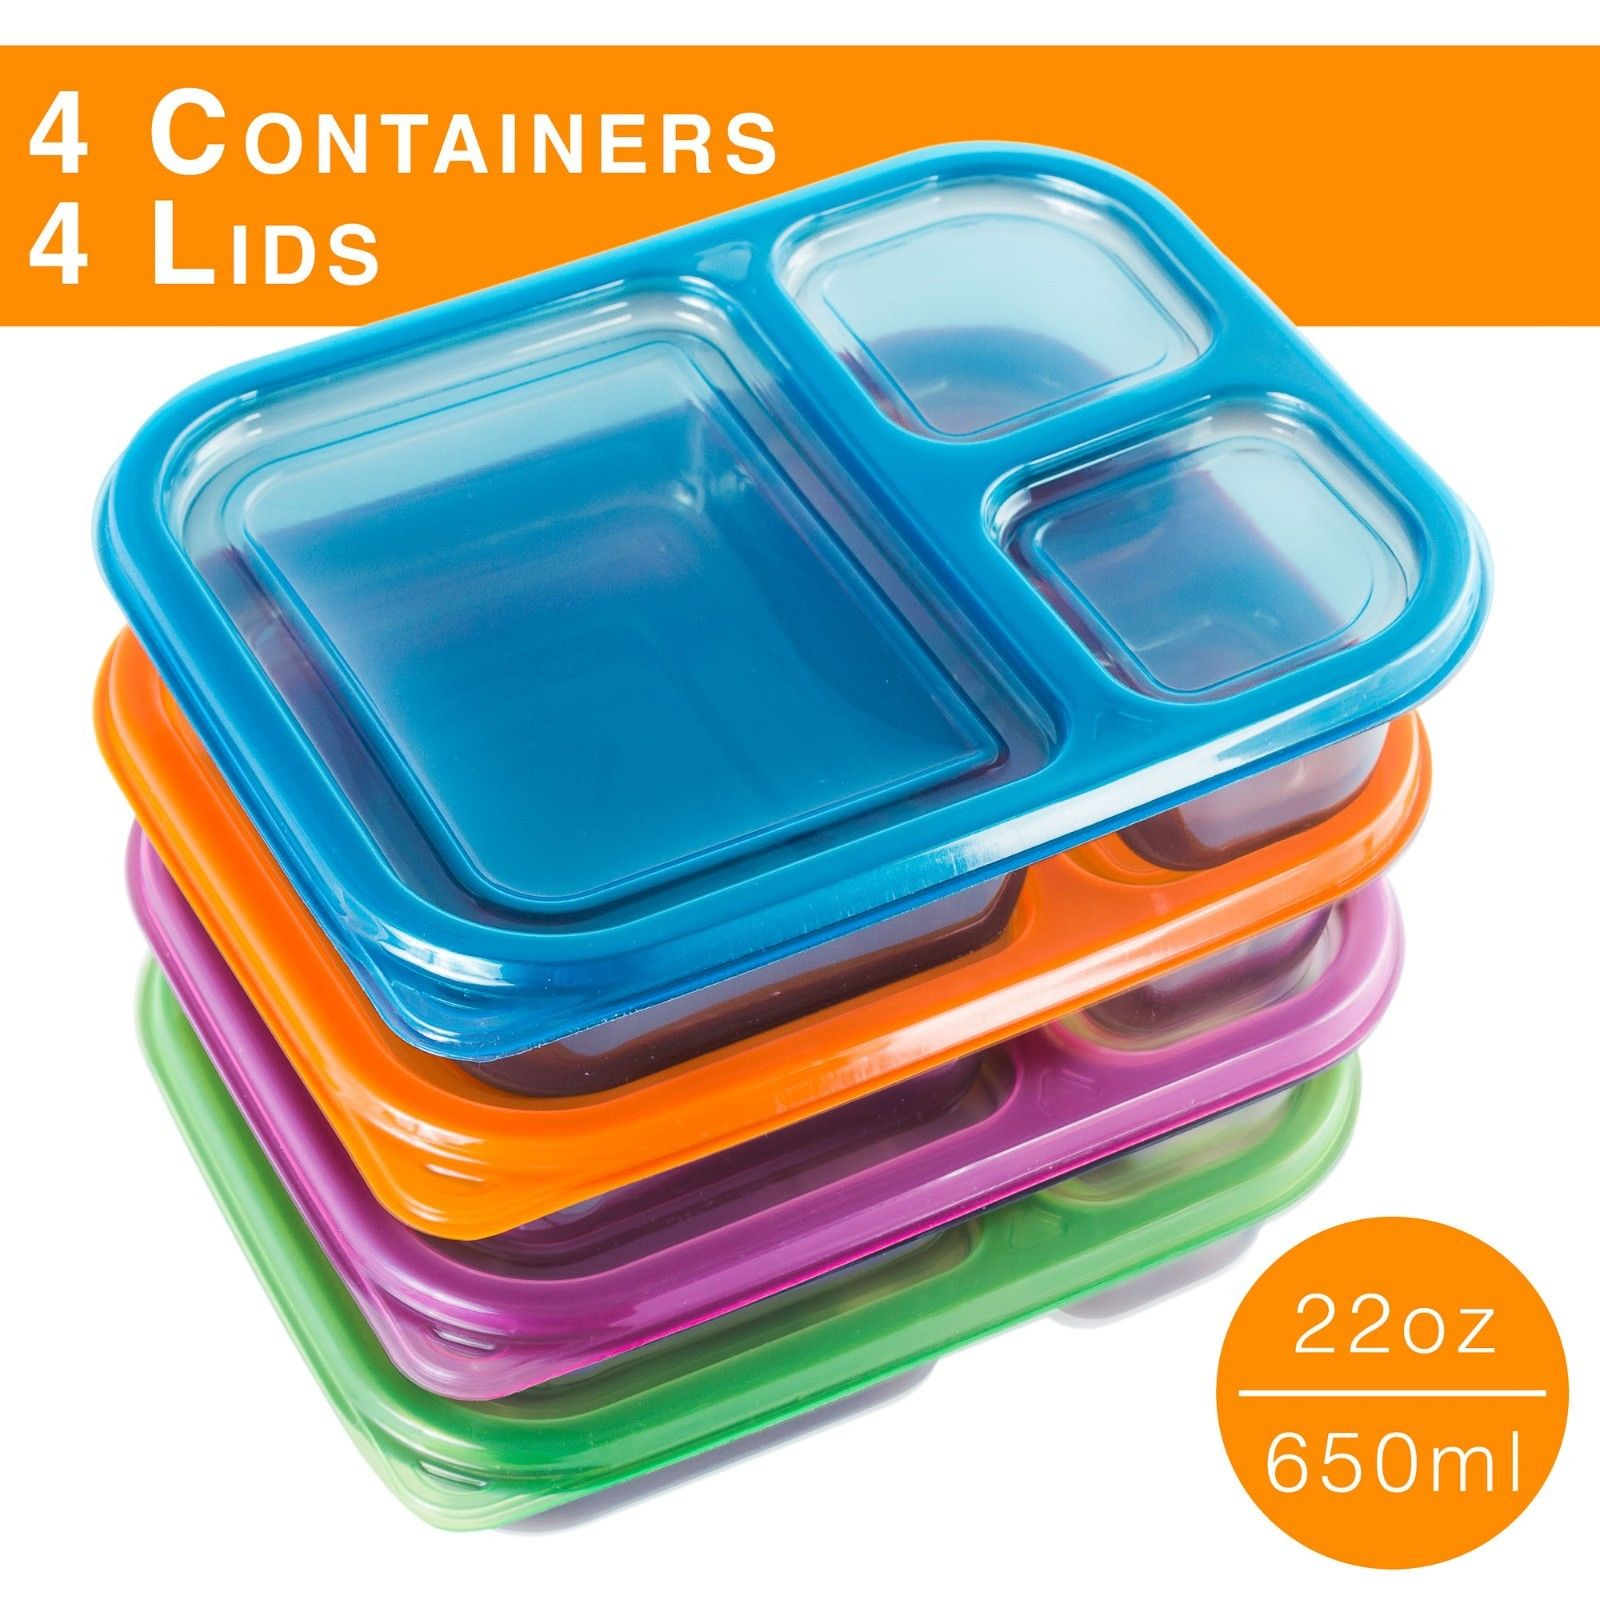 8 Pc Meal Containers Adult Lunch Boxes - 3 Compartment Lunch Containers (Multi Color Lids) - Microwave Safe Containers